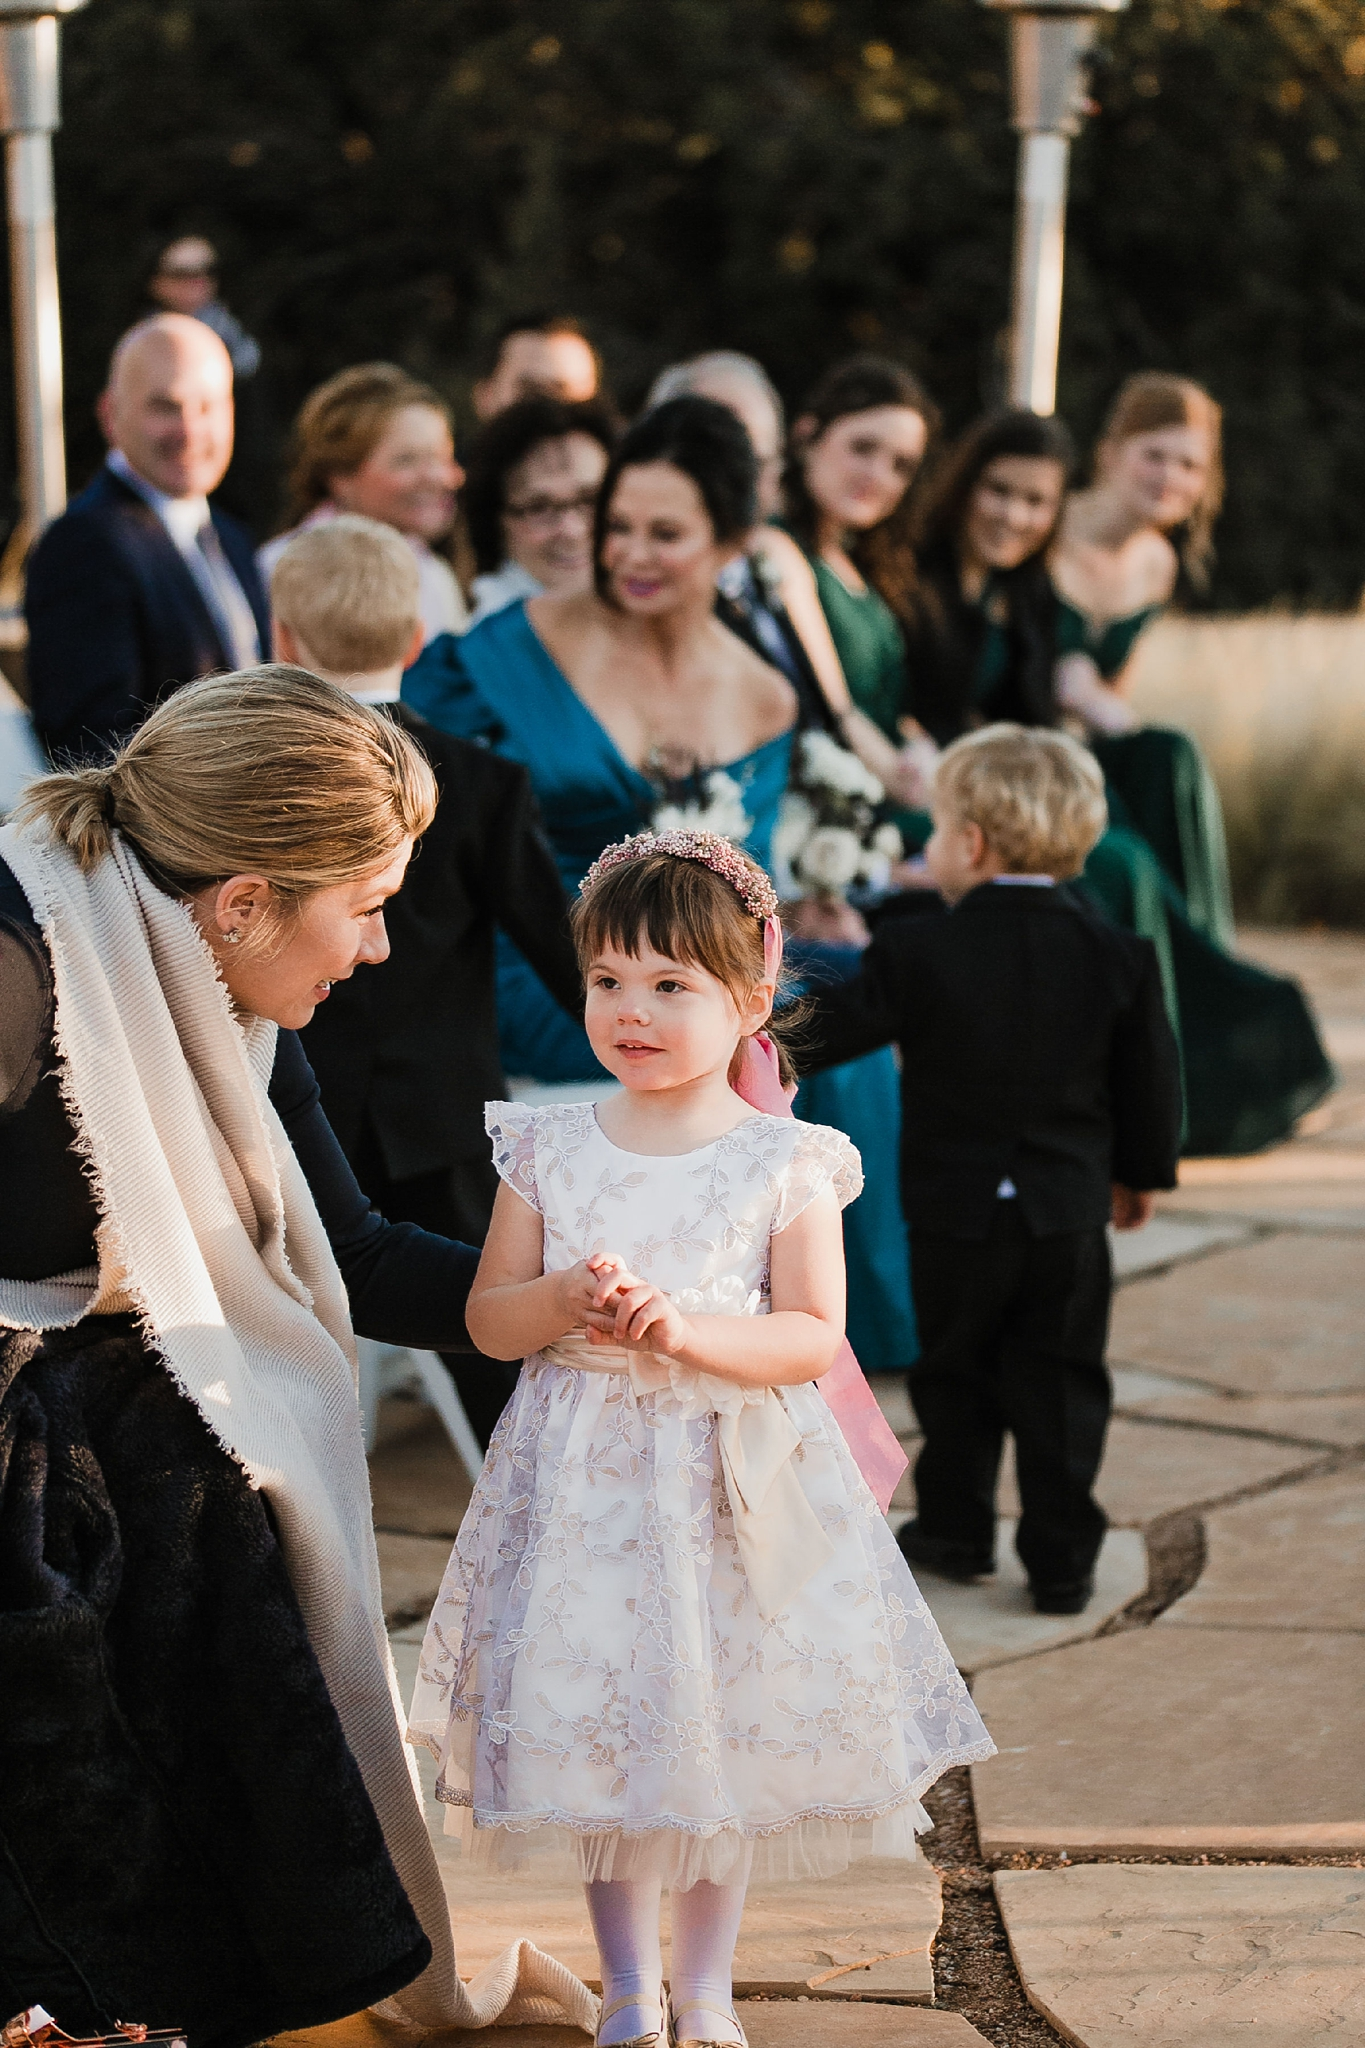 Alicia+lucia+photography+-+albuquerque+wedding+photographer+-+santa+fe+wedding+photography+-+new+mexico+wedding+photographer+-+new+mexico+wedding+-+flower+girl+-+wedding+flower+girl_0005.jpg